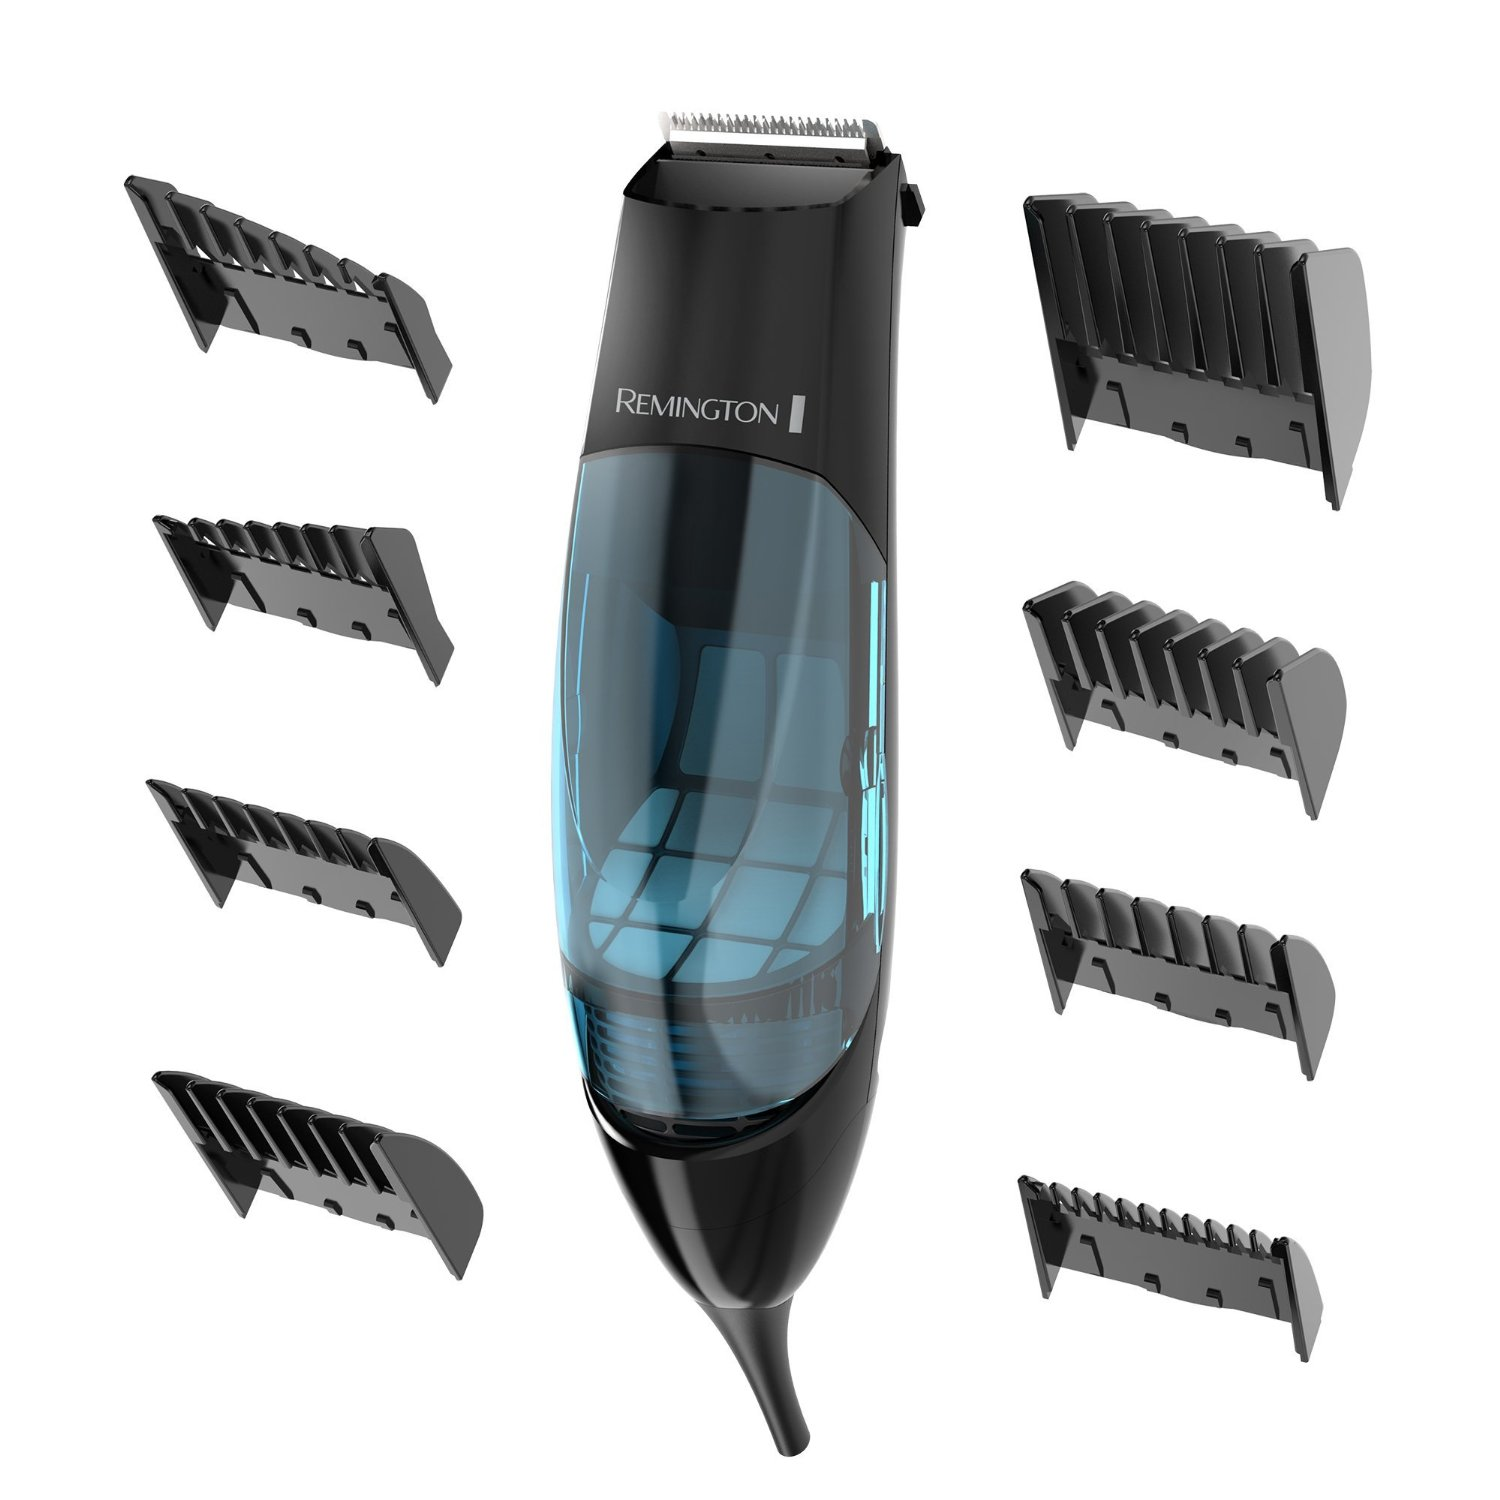 Remington 18-Piece Trimmer